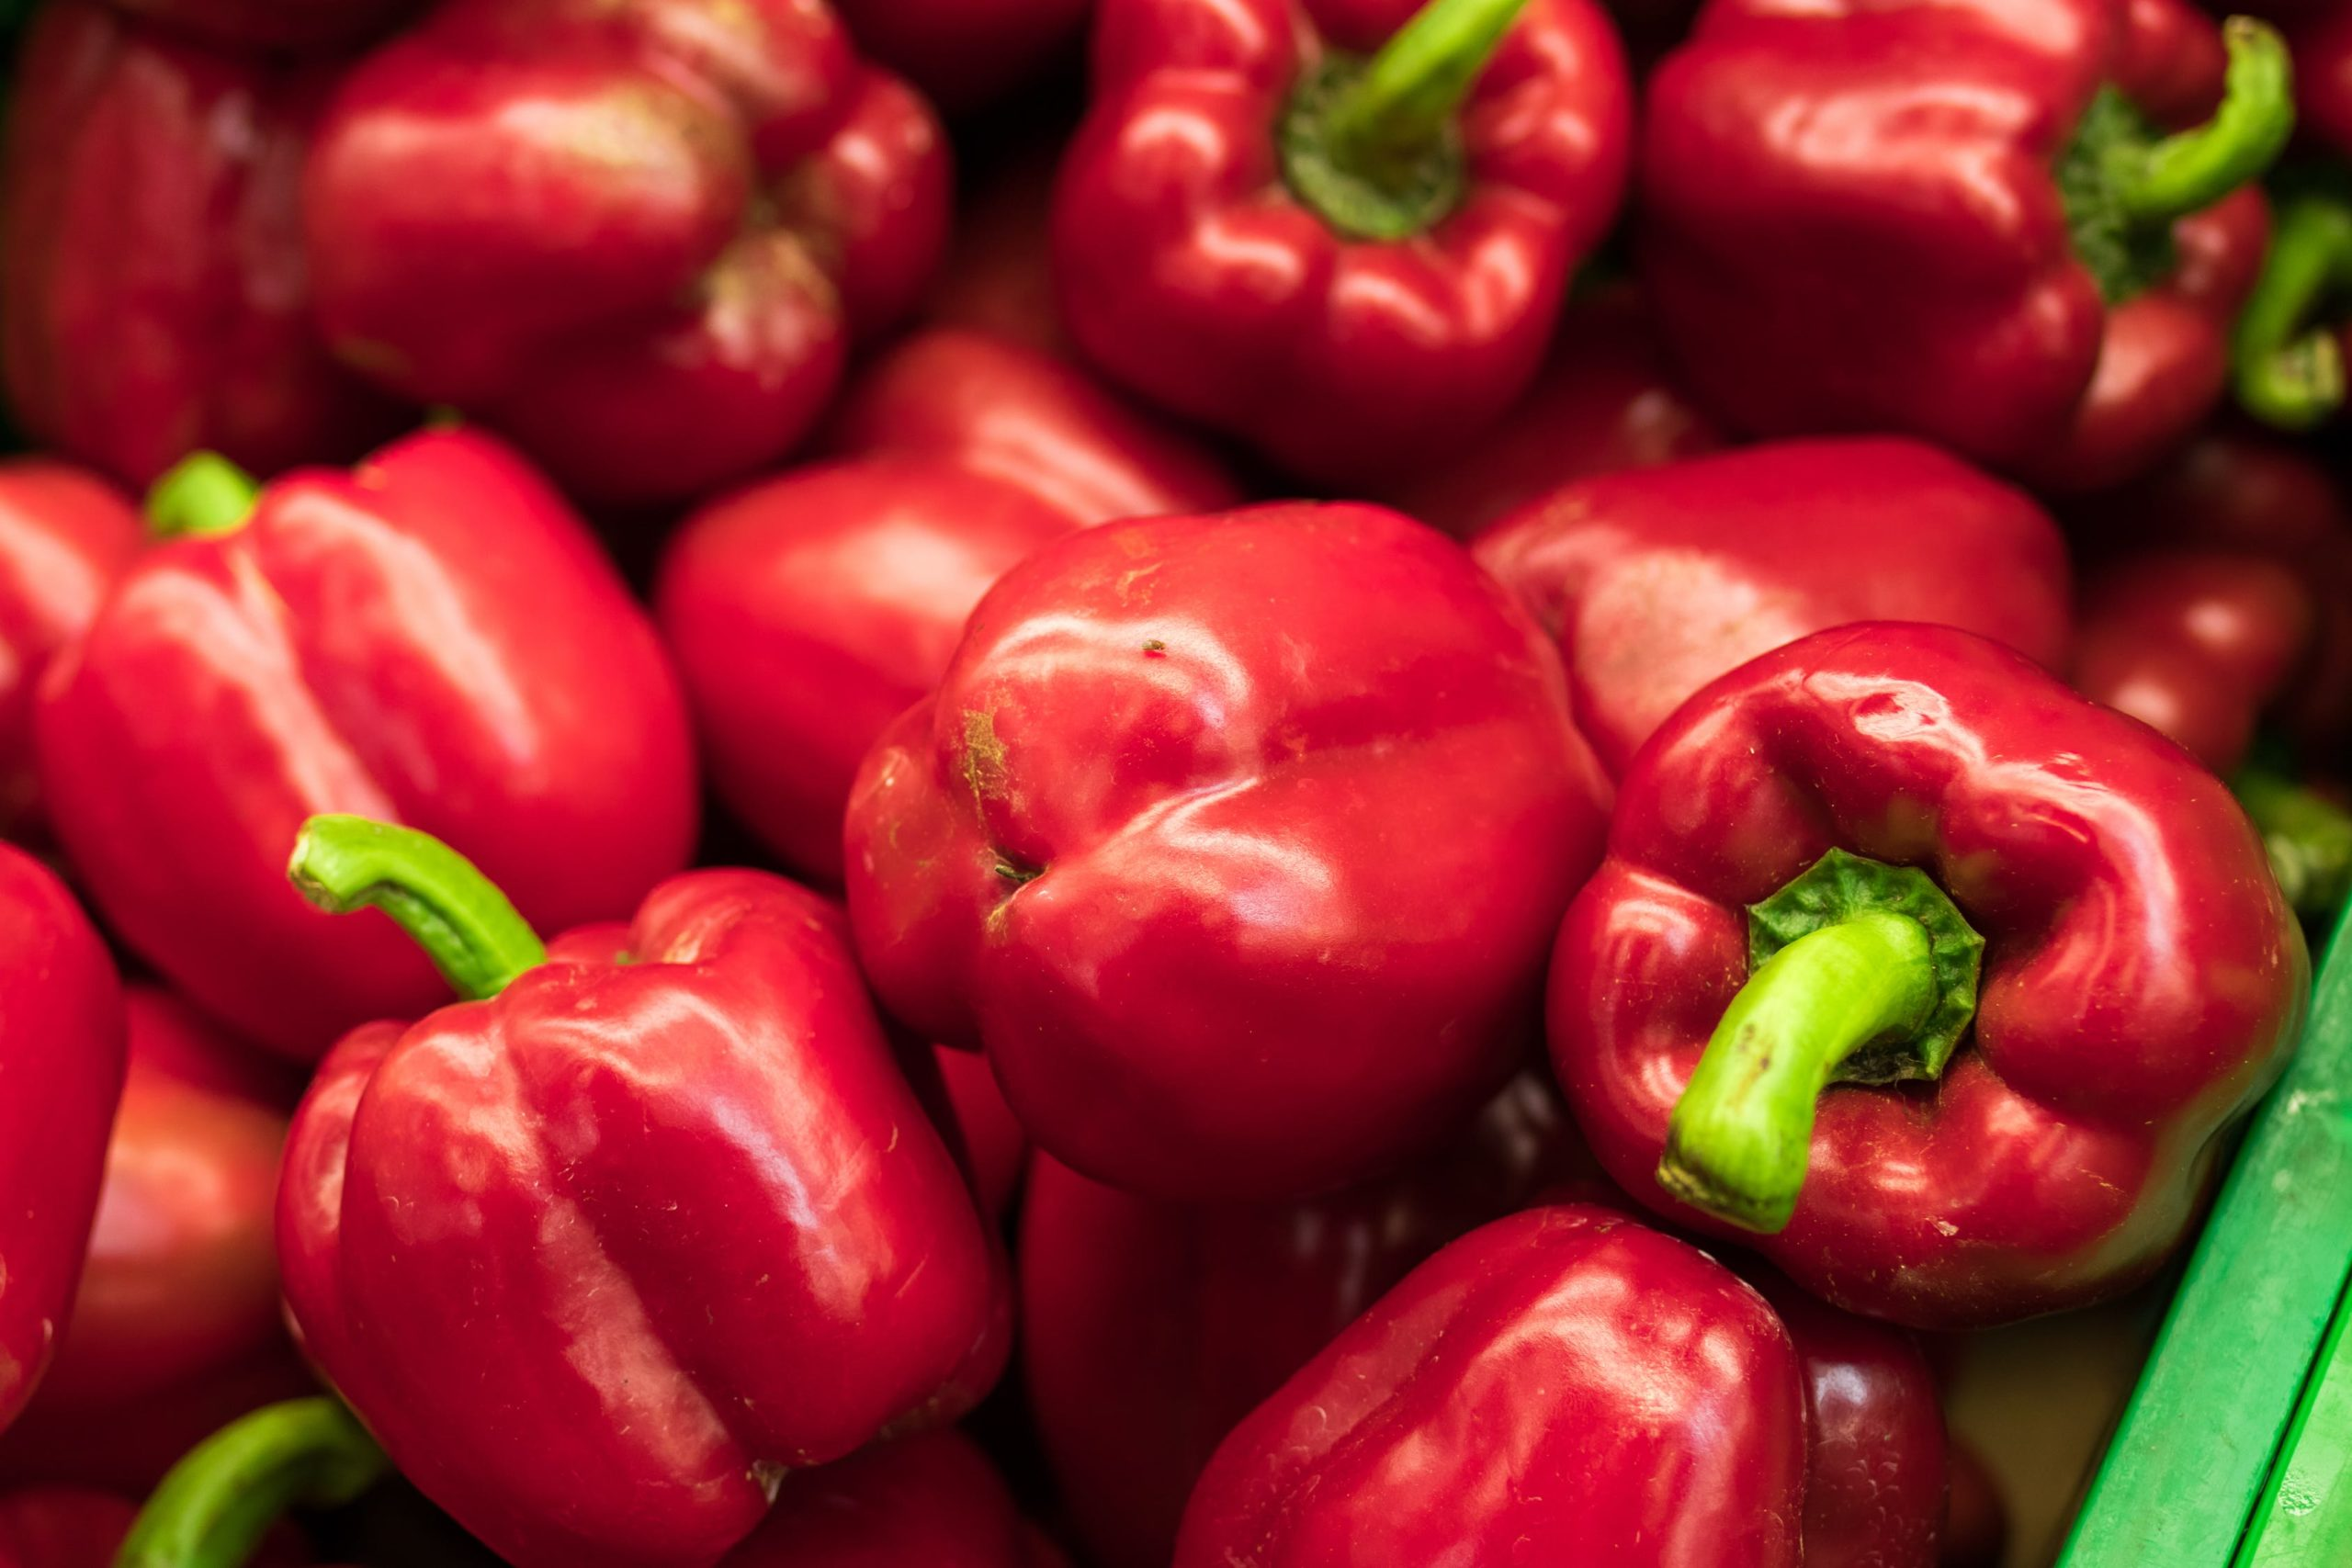 Red bell peppers as Immune Booster Food